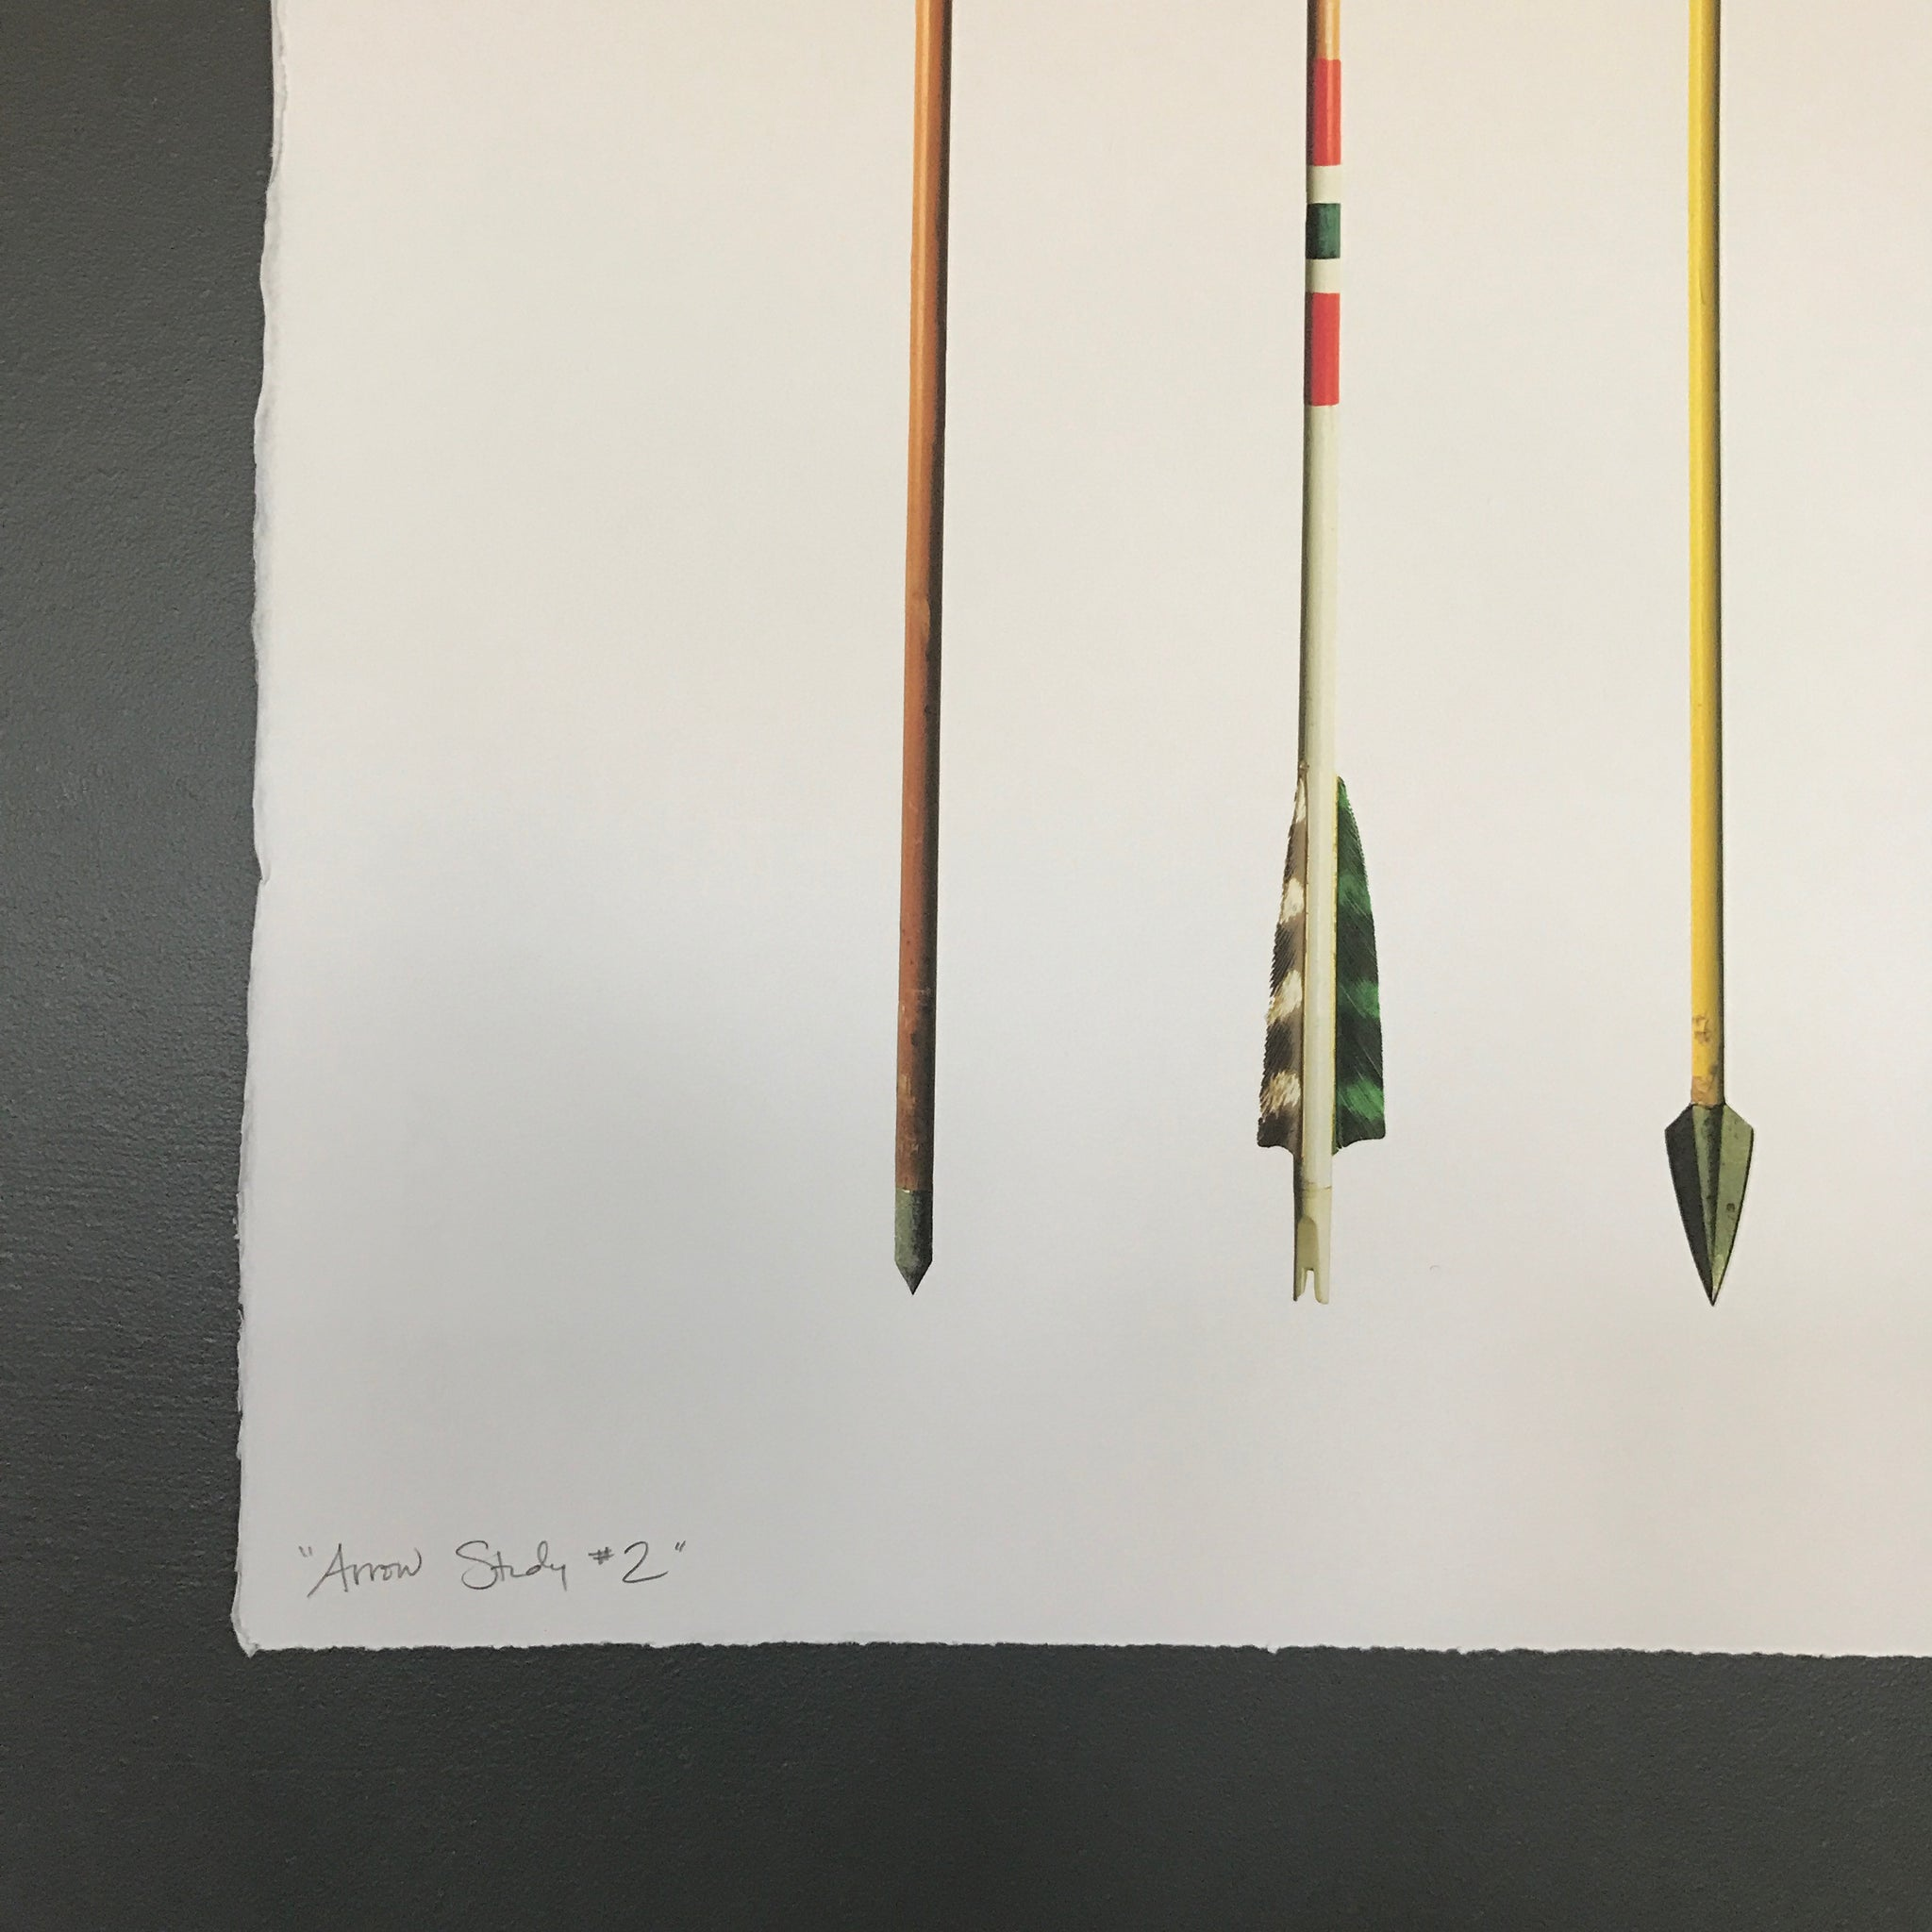 Vintage Arrow Study Number 2 by Barloga Studios